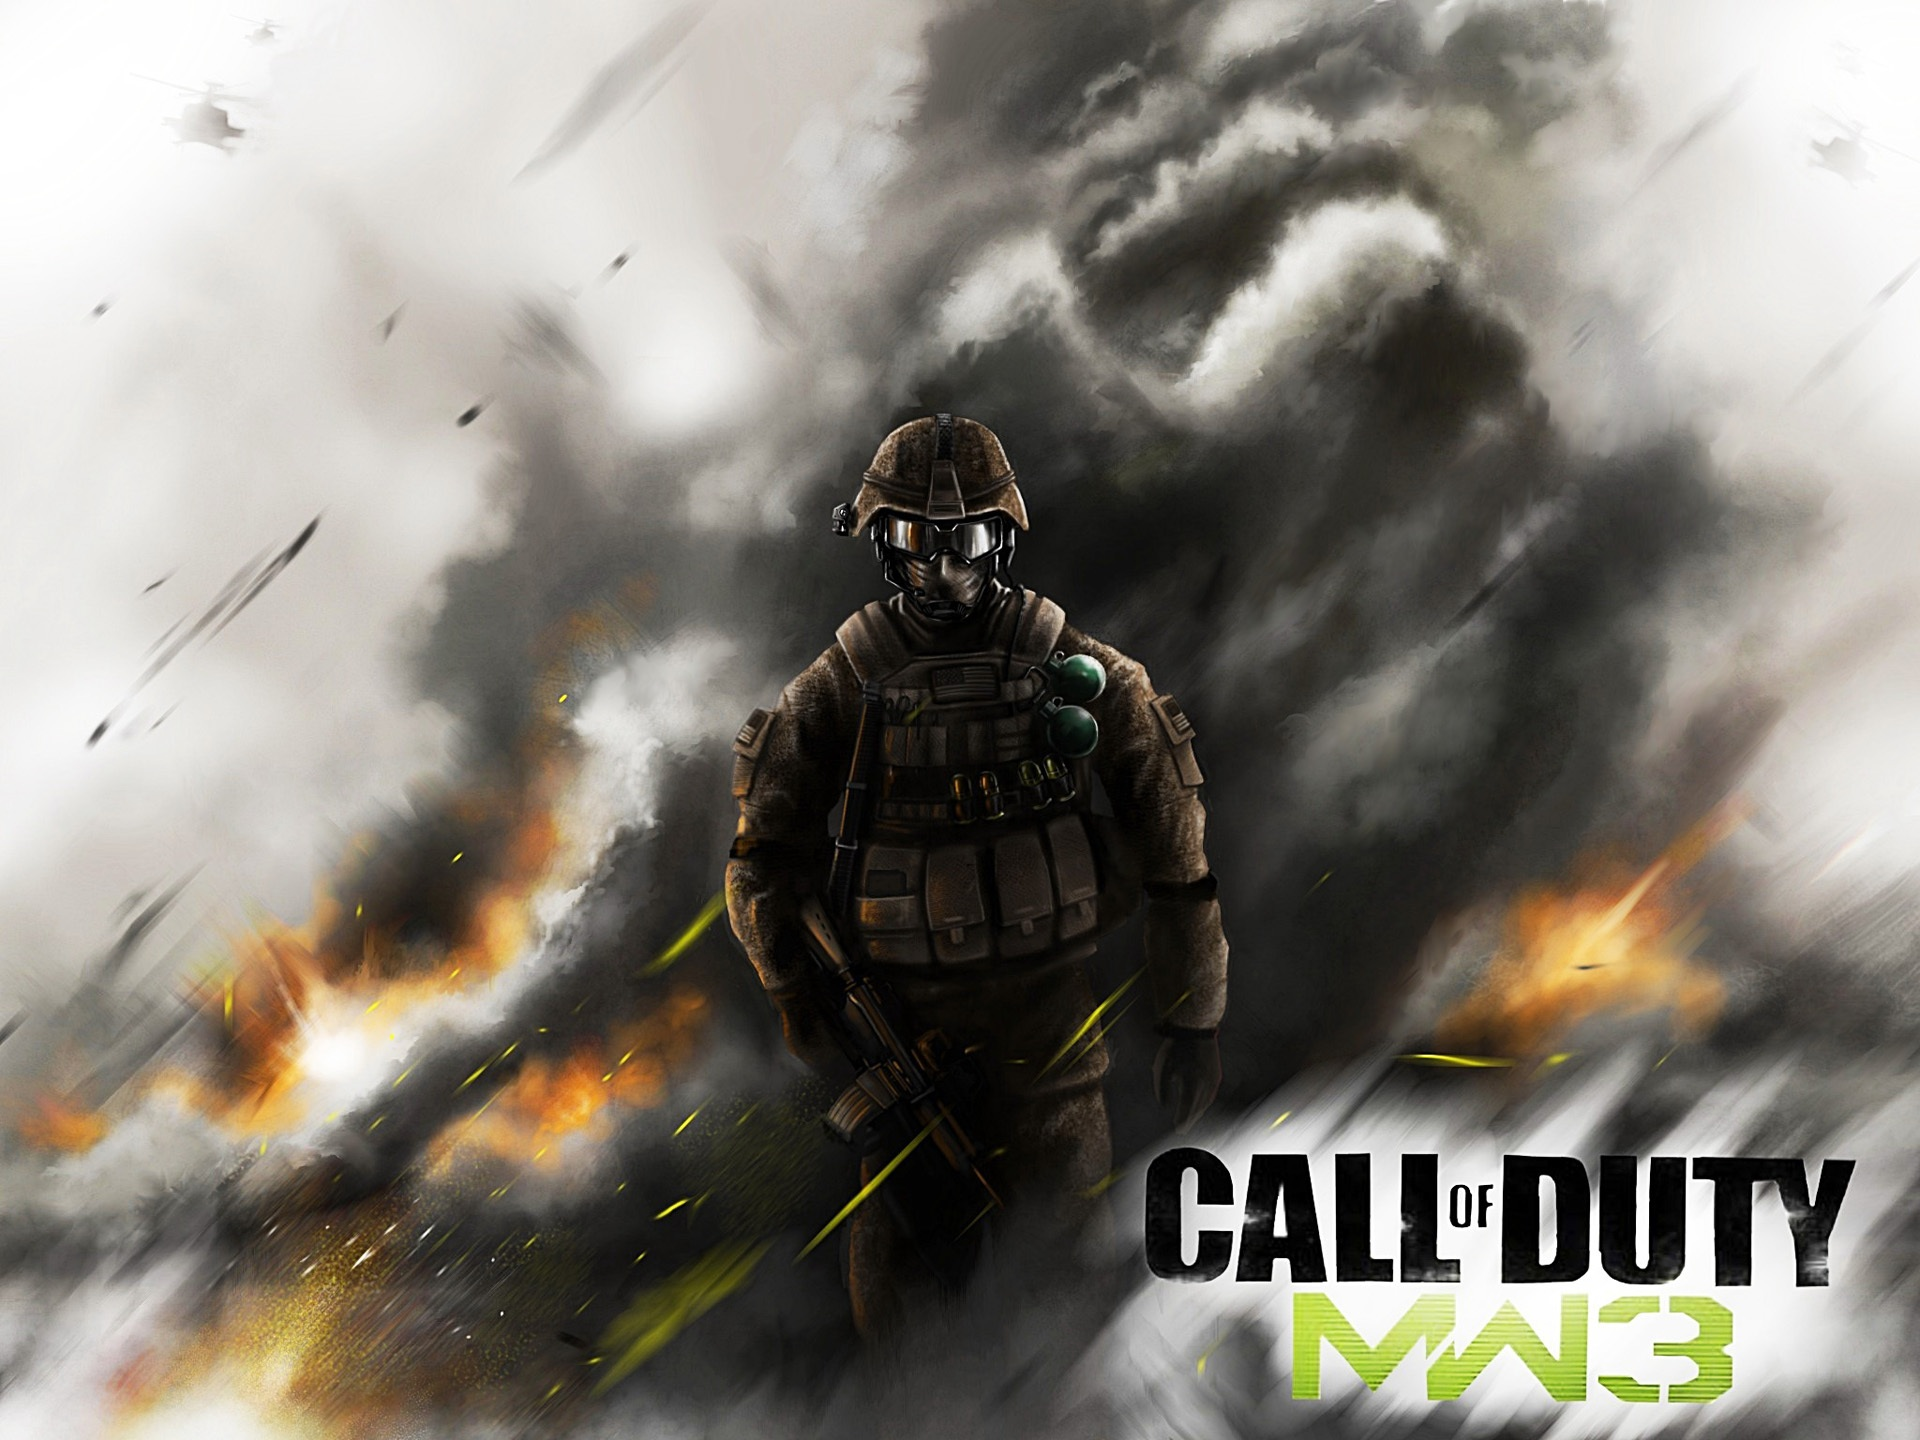 Wallpaper Pc Game Call Of Duty Modern Warfare 3 1920x1440